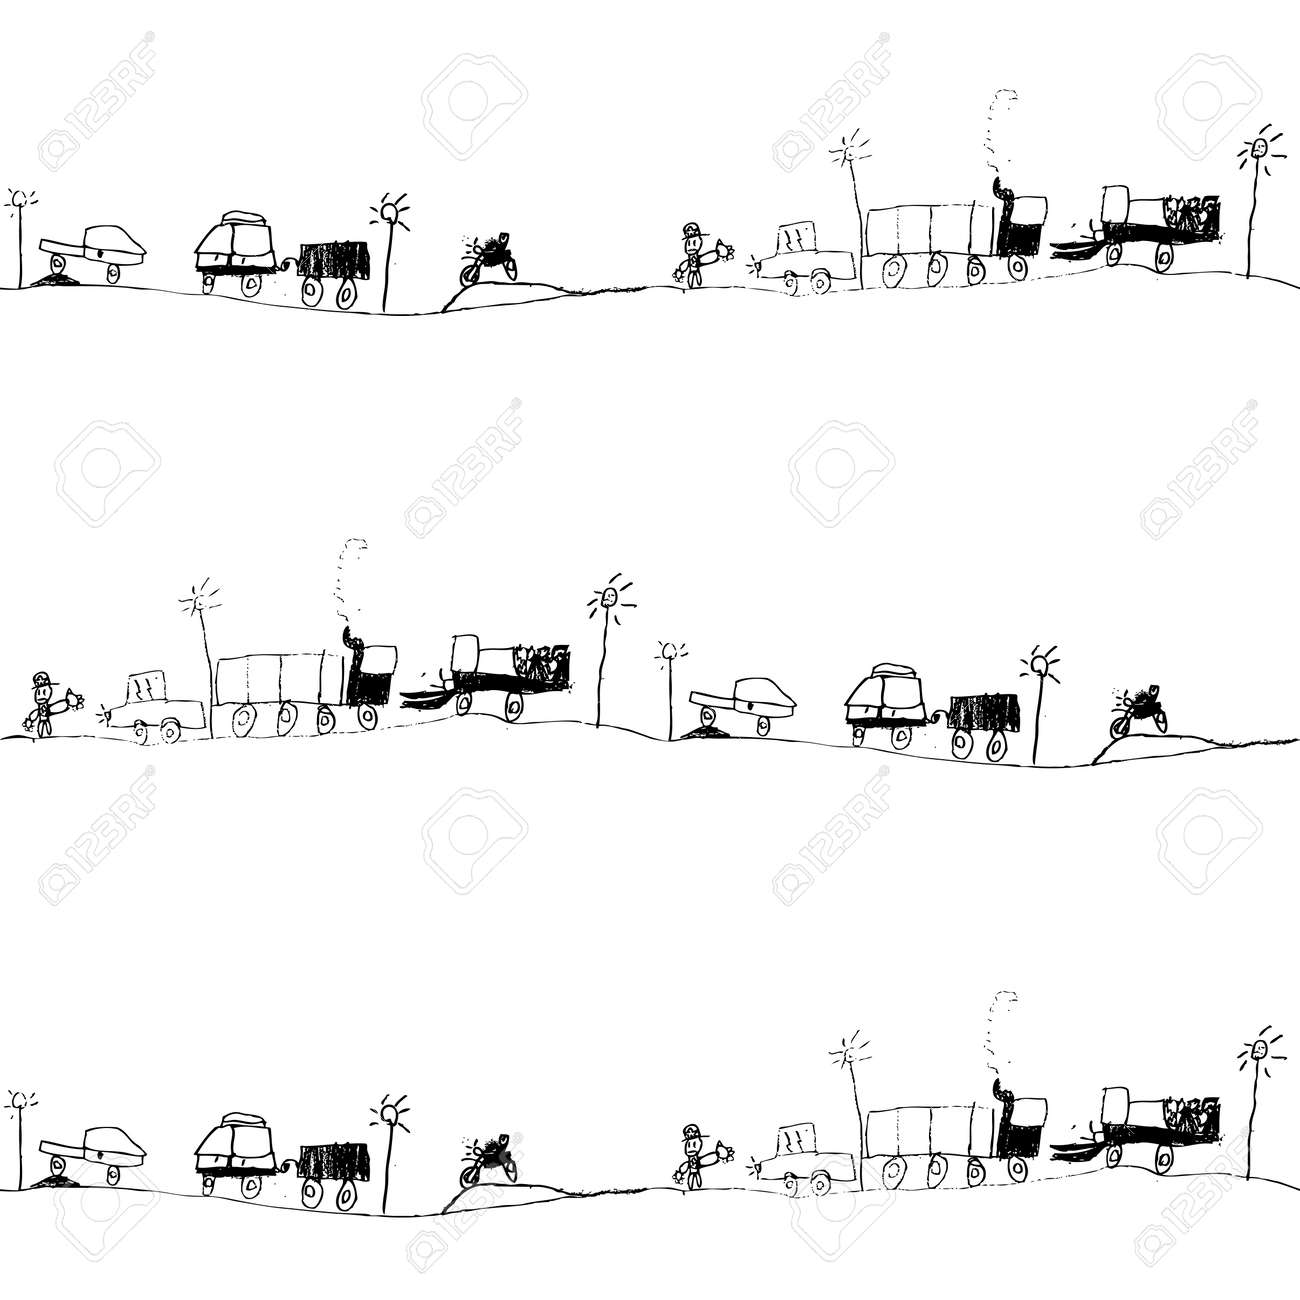 traffic jam kid s drawing seamless pattern royalty cliparts vector traffic jam kid s drawing seamless pattern